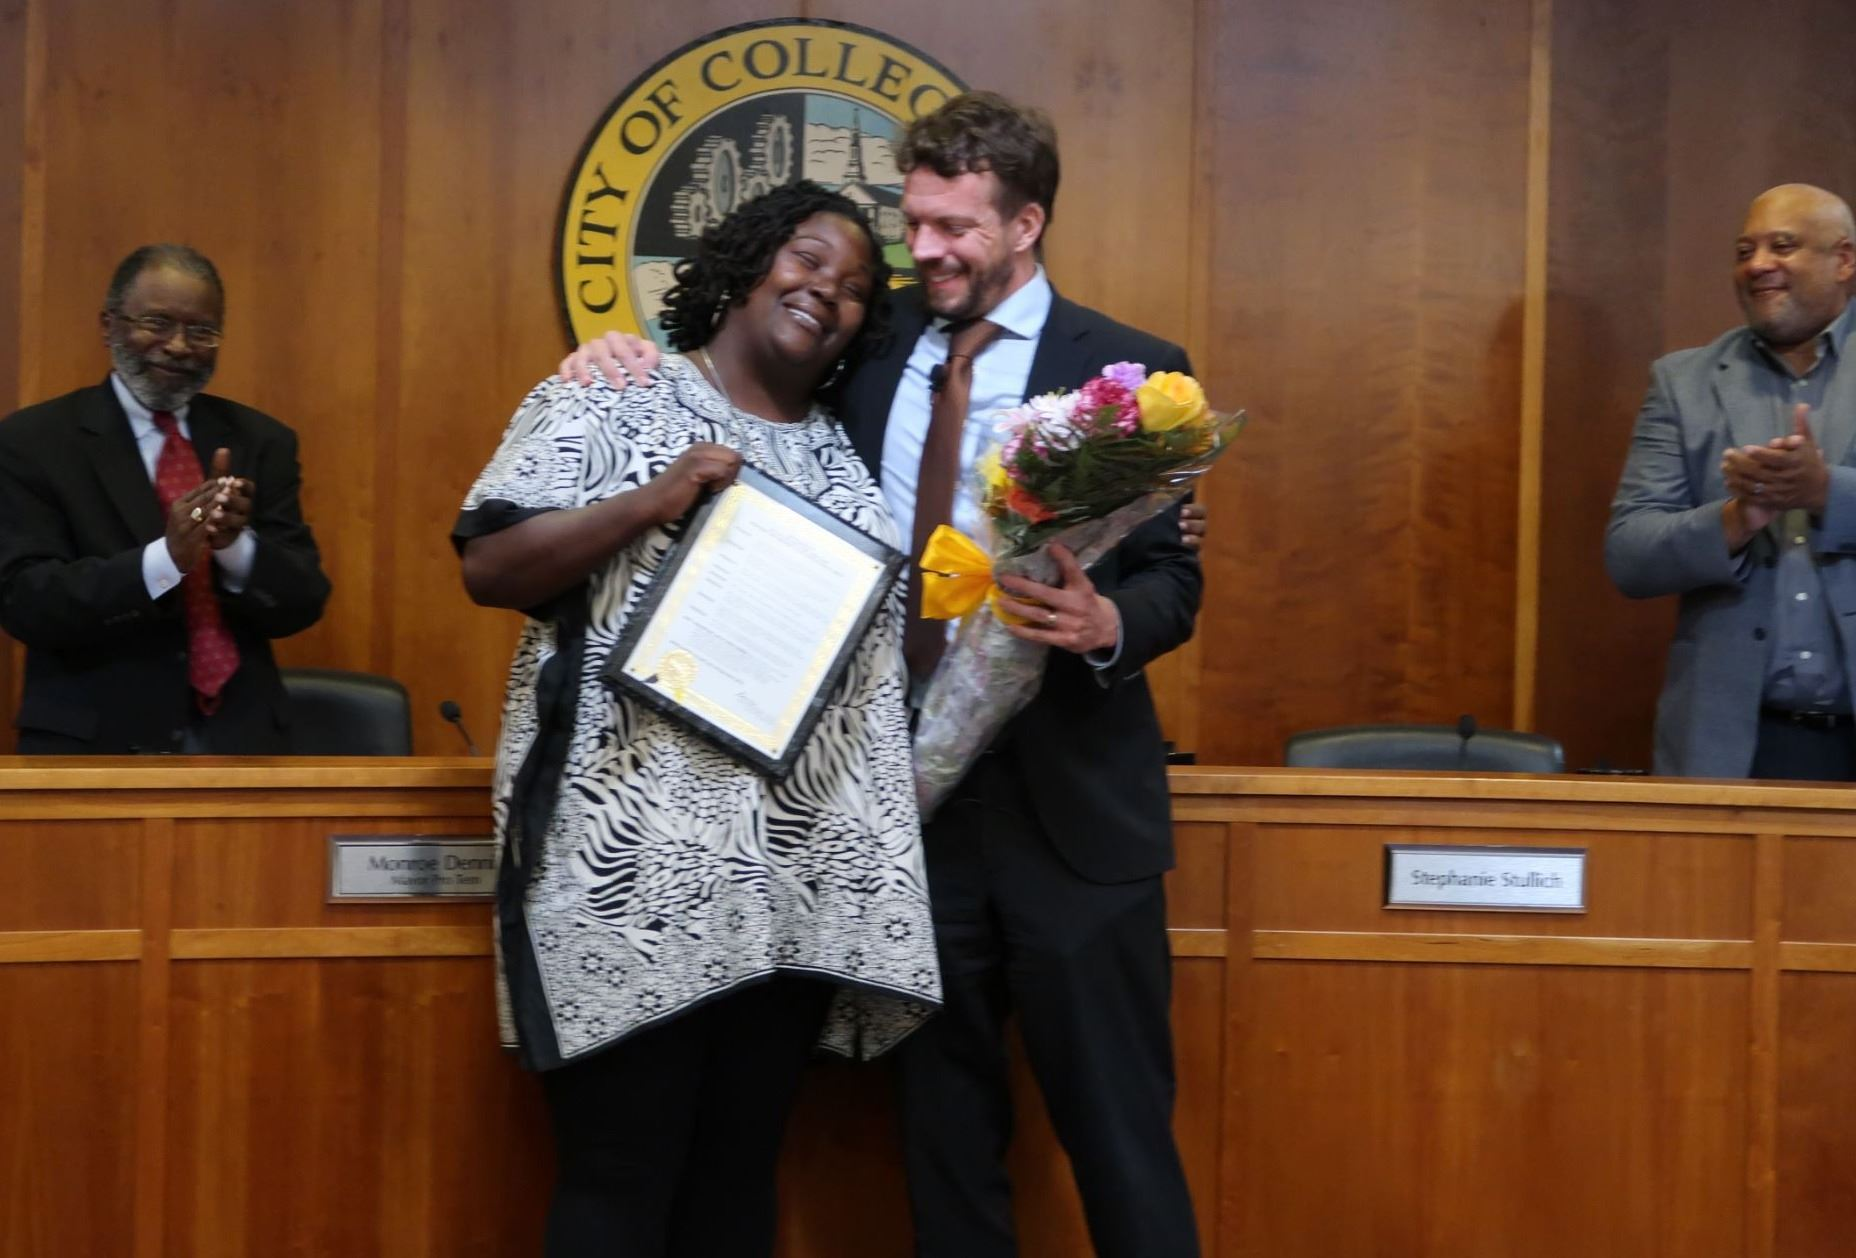 Renita Smith Recognition at Council Meeting